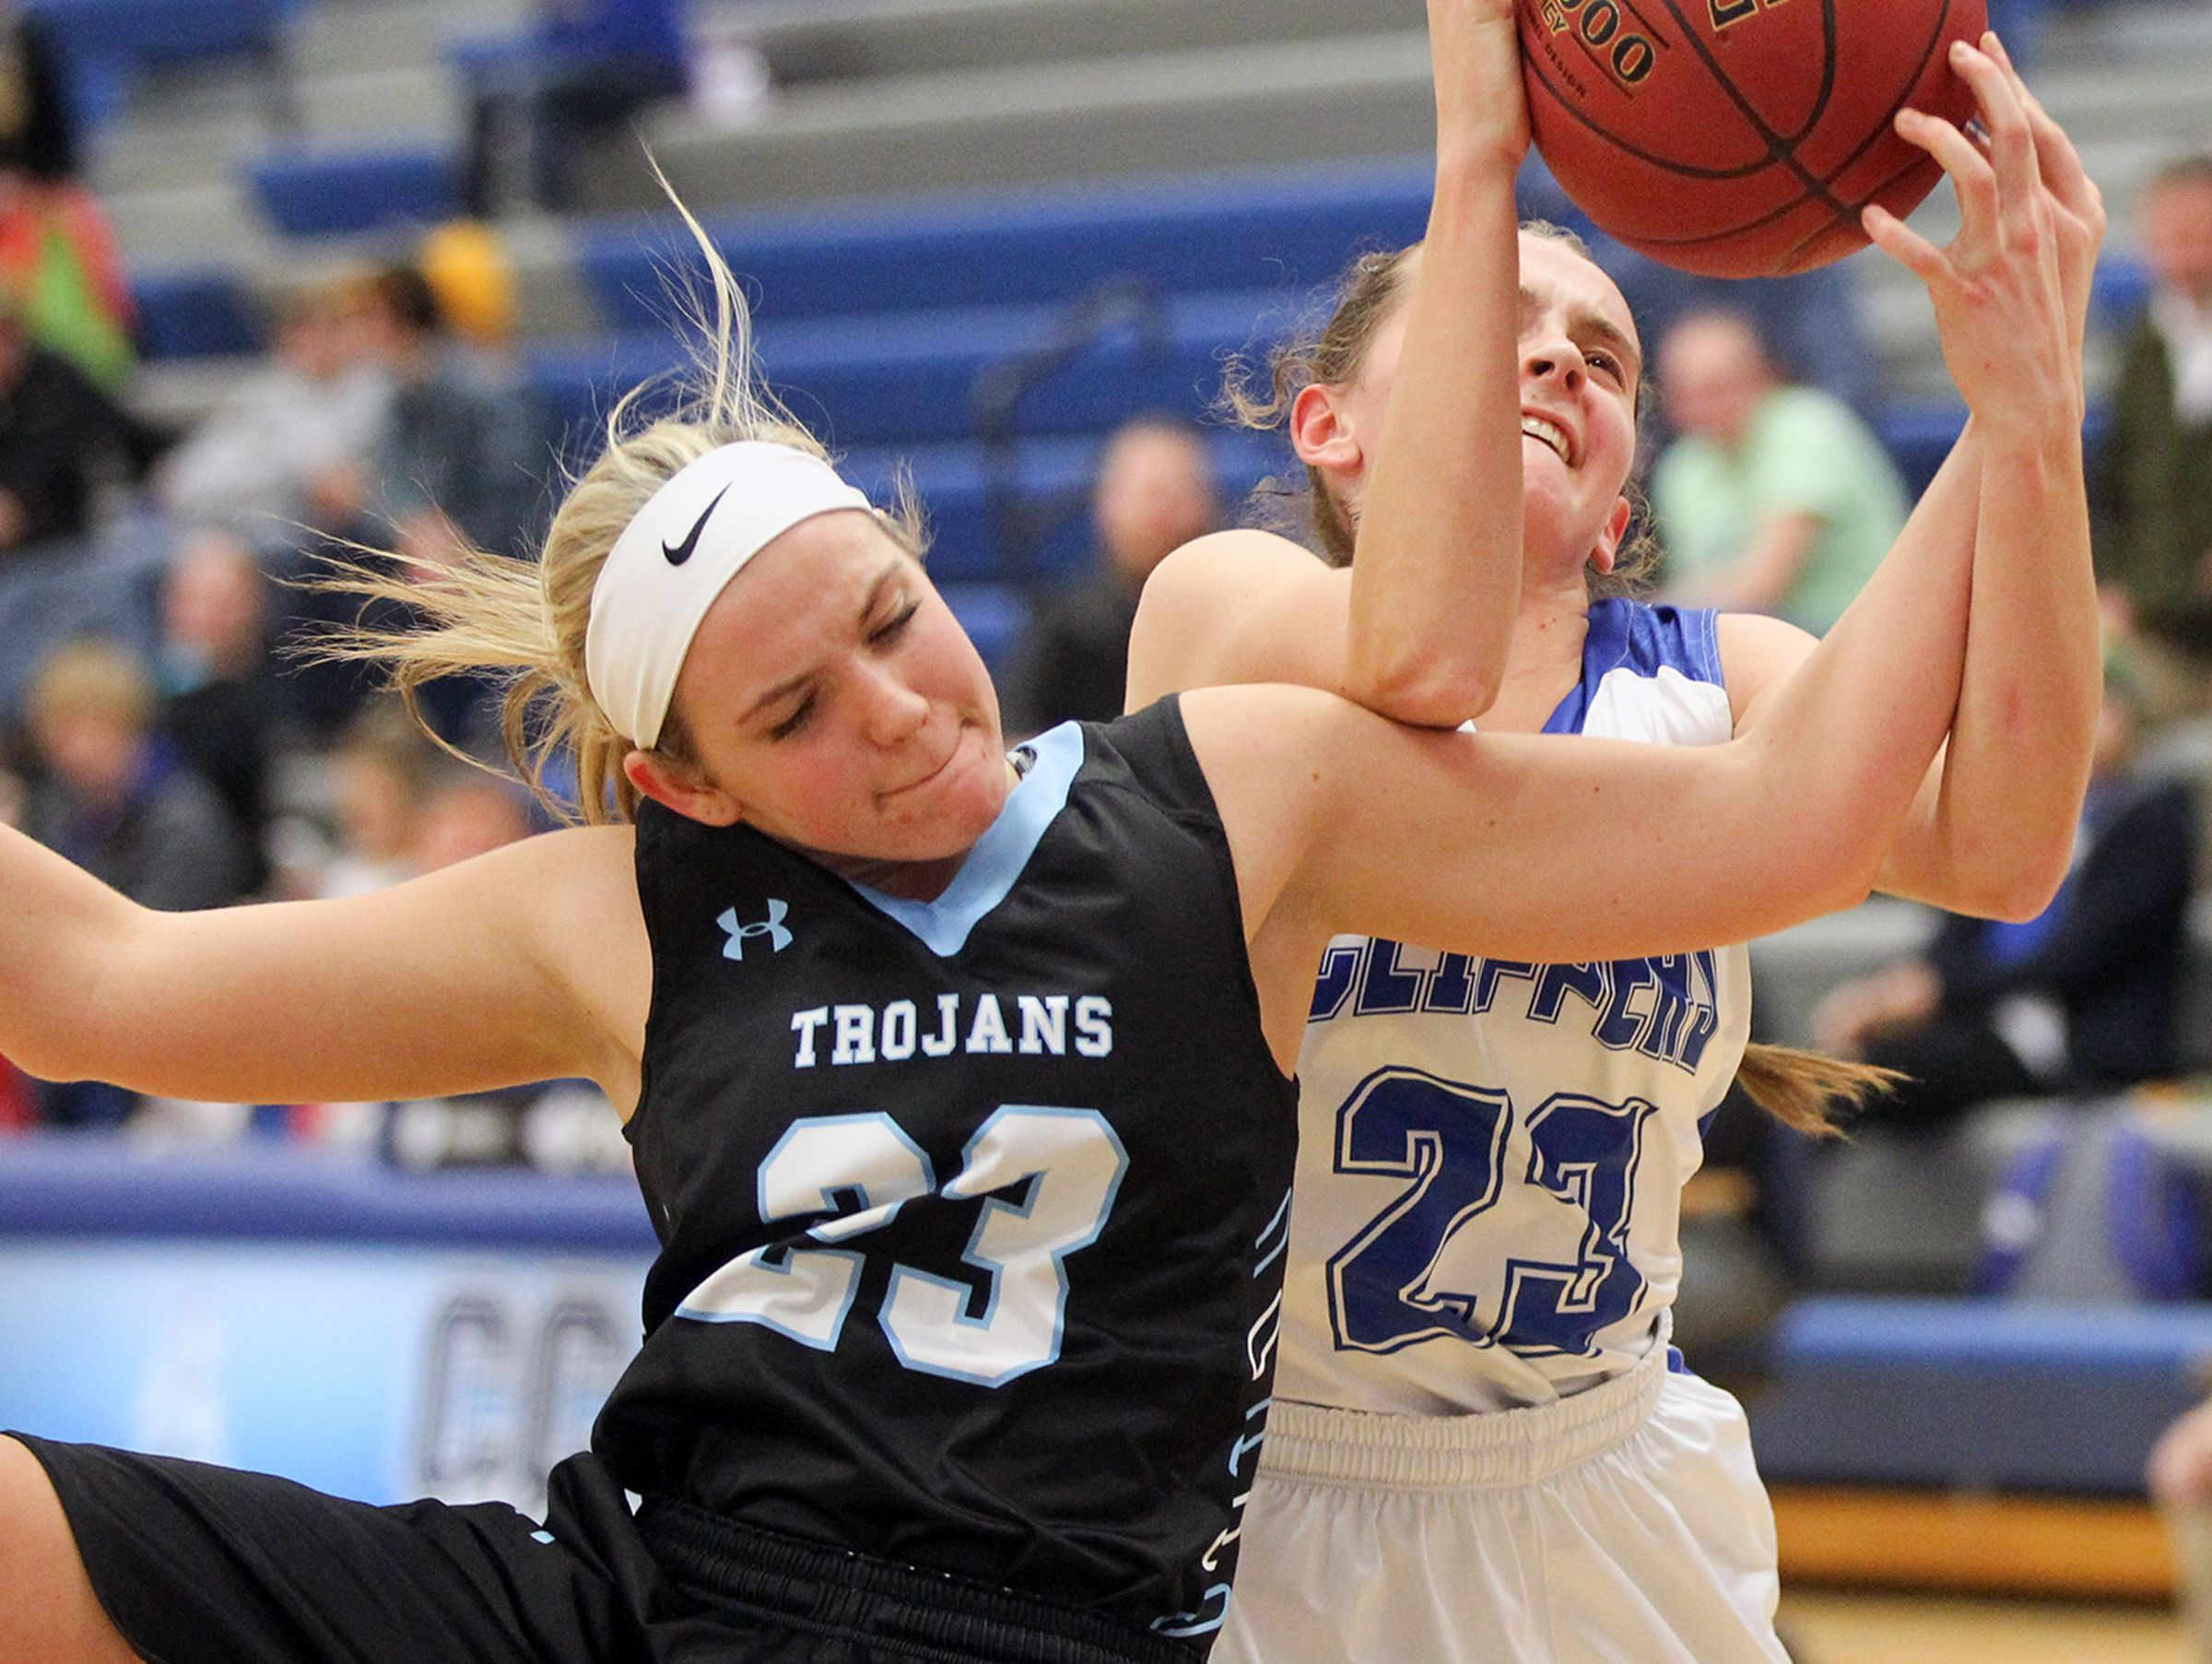 Cear Creek Amana's Karsyn Stratton and South Tama's Madison Rohach fight for a rebound during their game in Tiffin on Monday, Dec. 19, 2016.